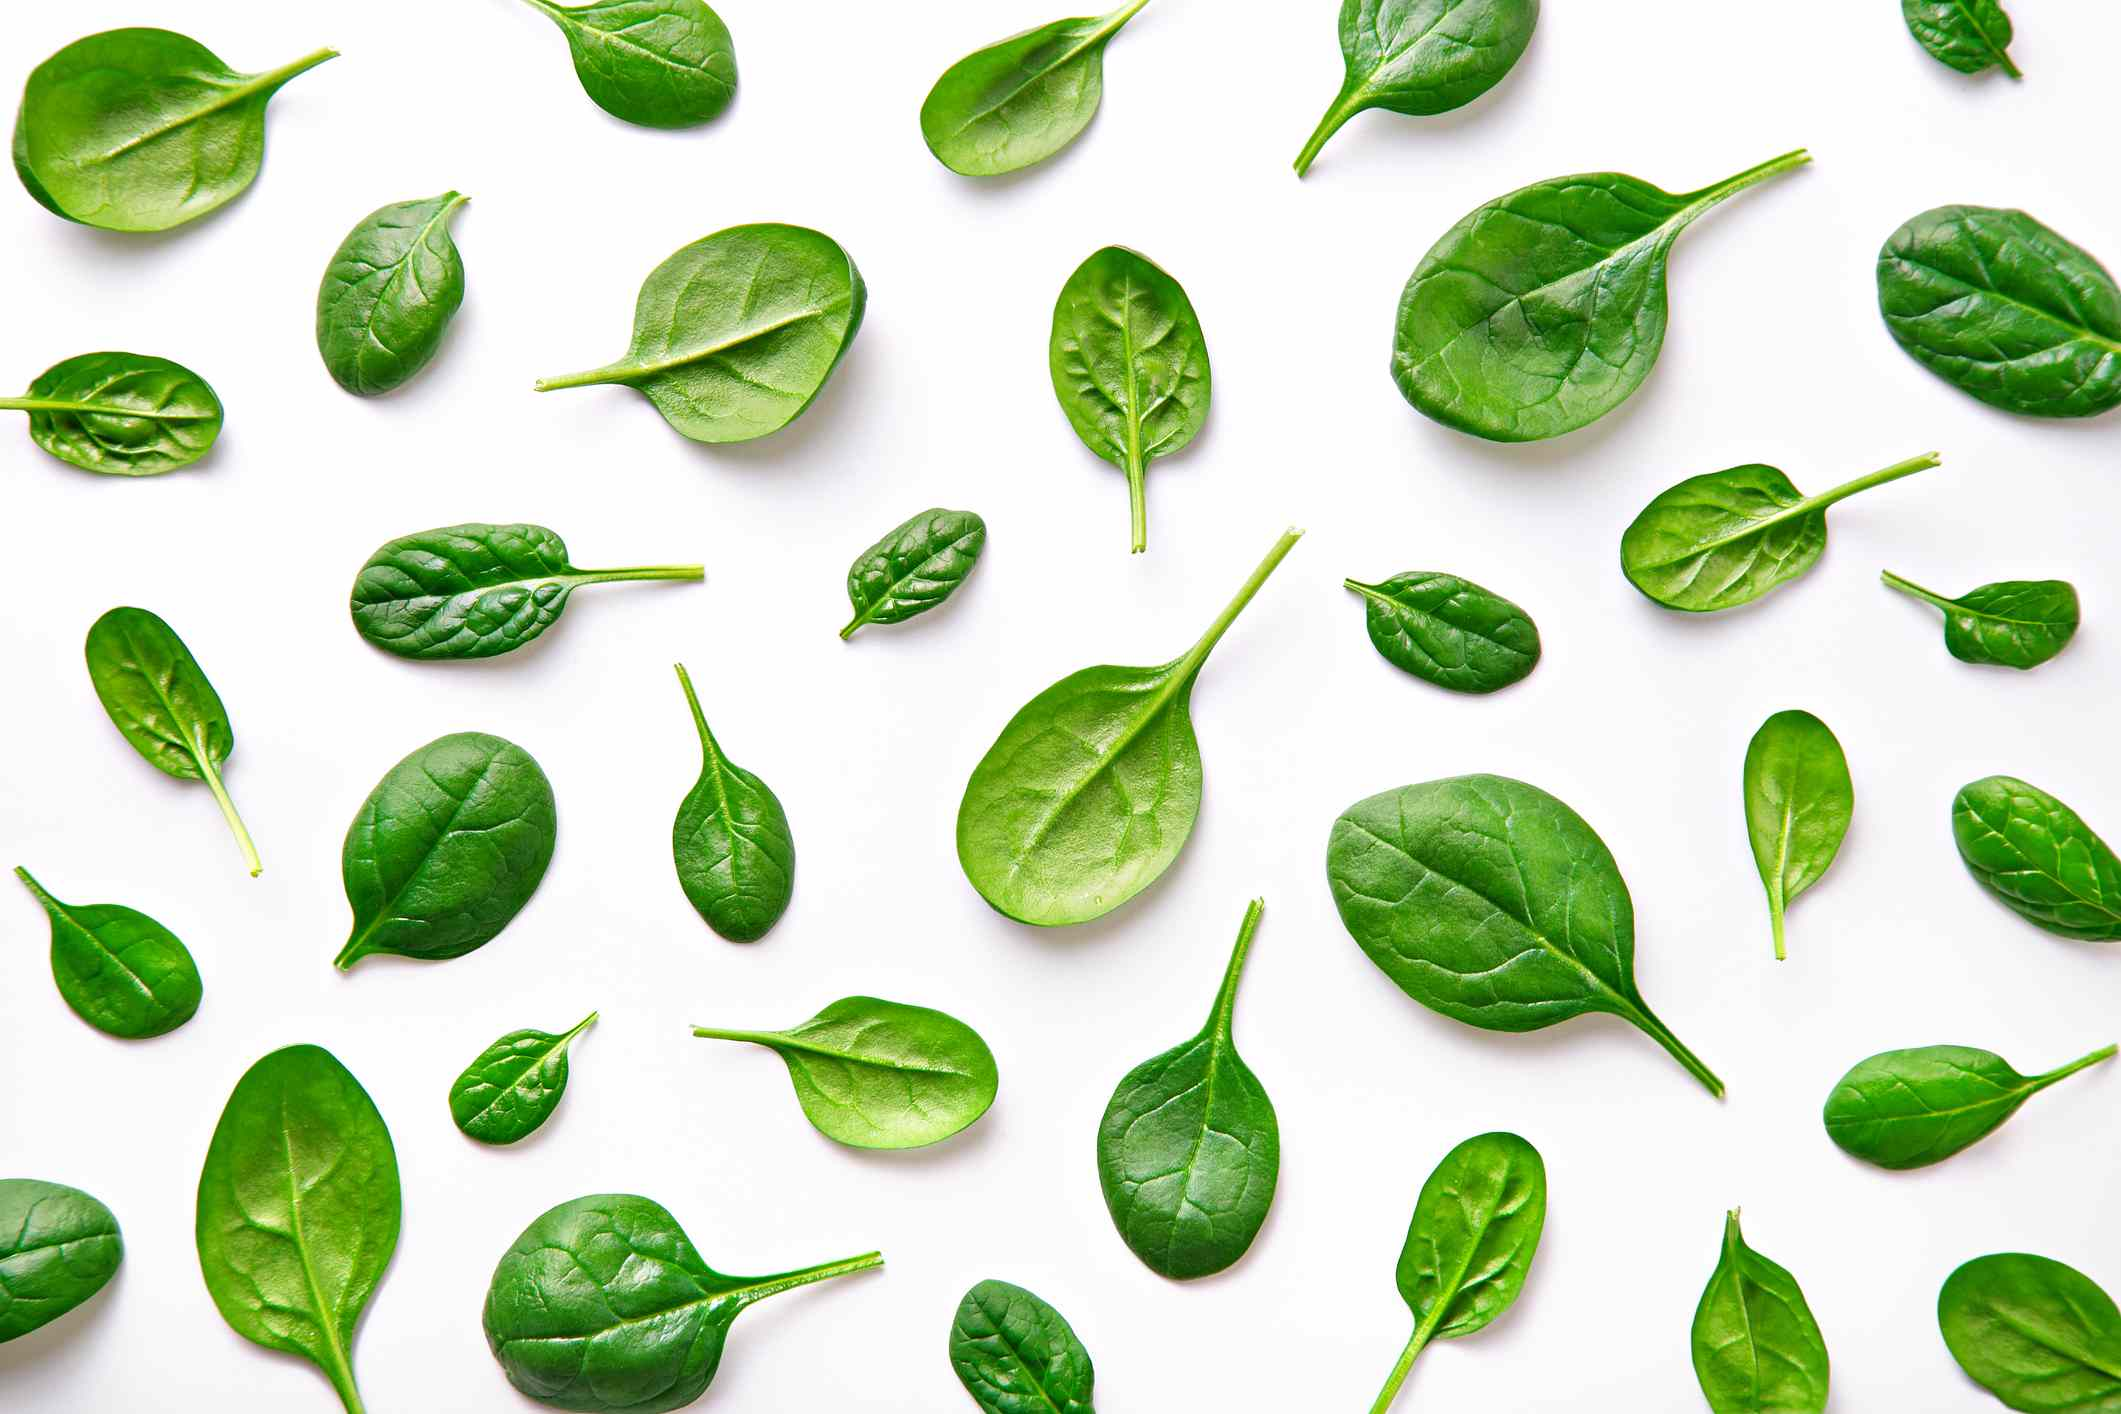 spinach scattered on a white background